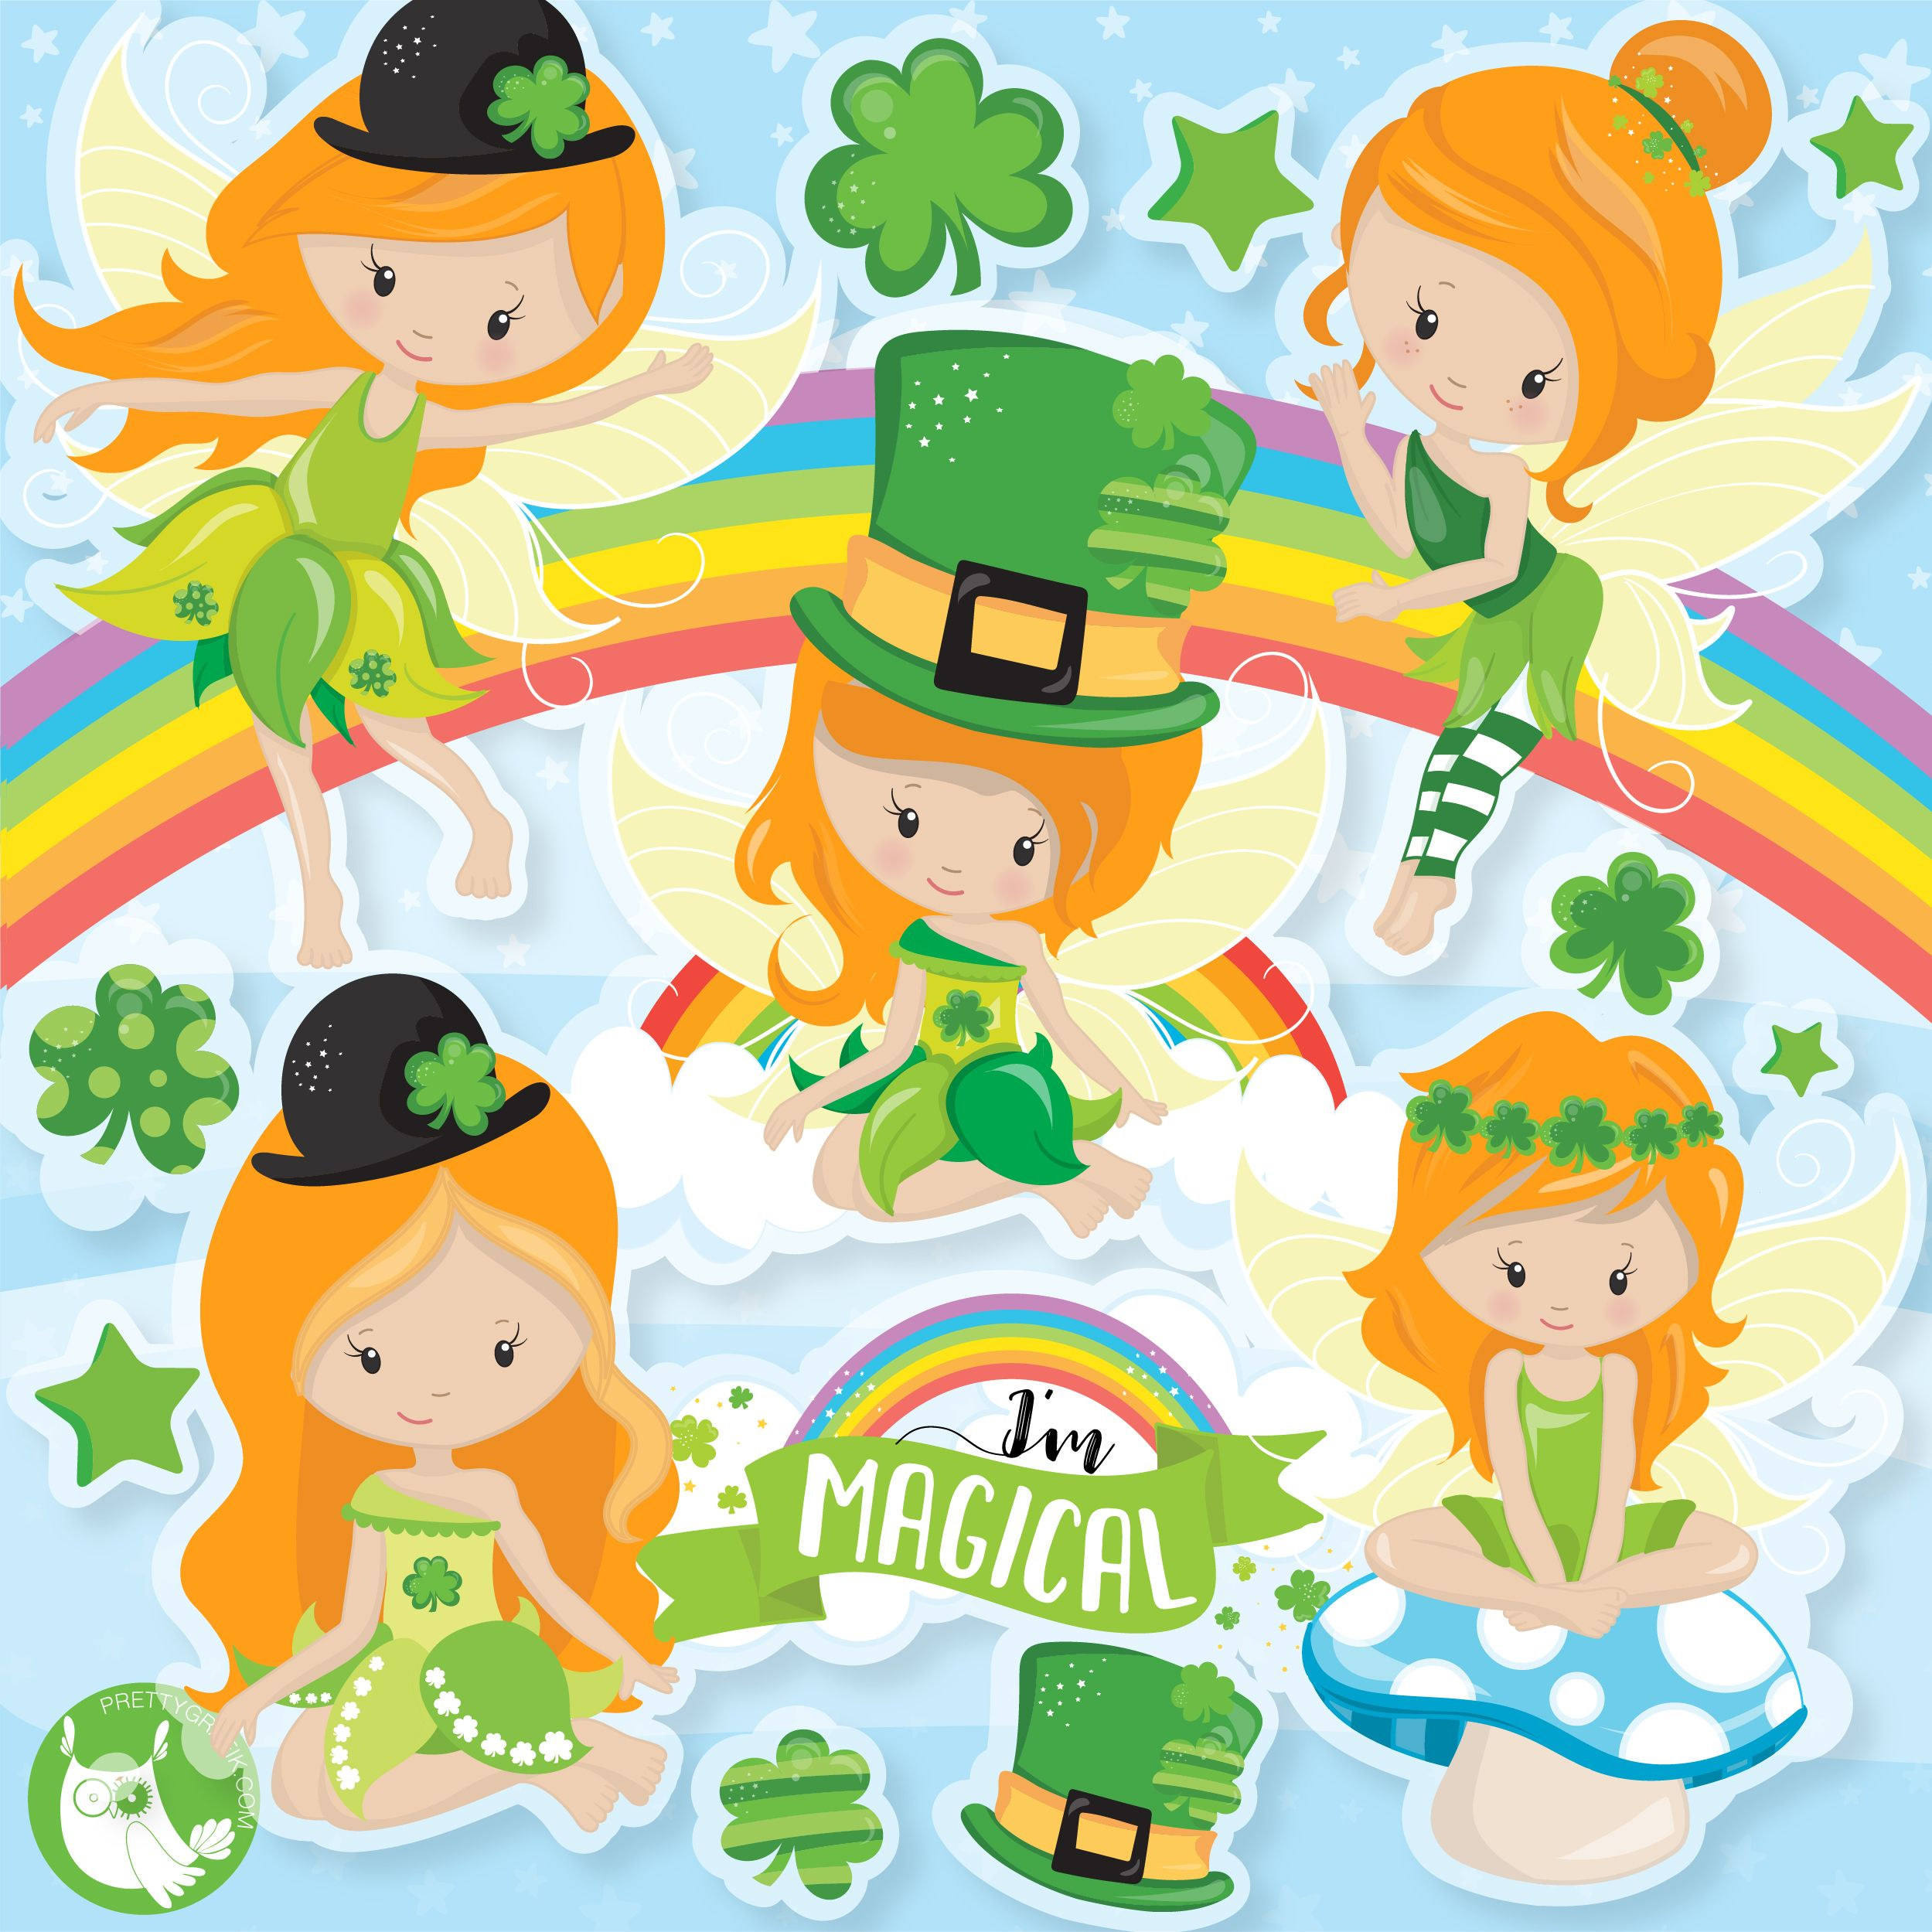 99 cent clipart banner free stock NEW CLIPART RELEASE* St-Patrick\'s day Fairies graphics for only .99 ... banner free stock